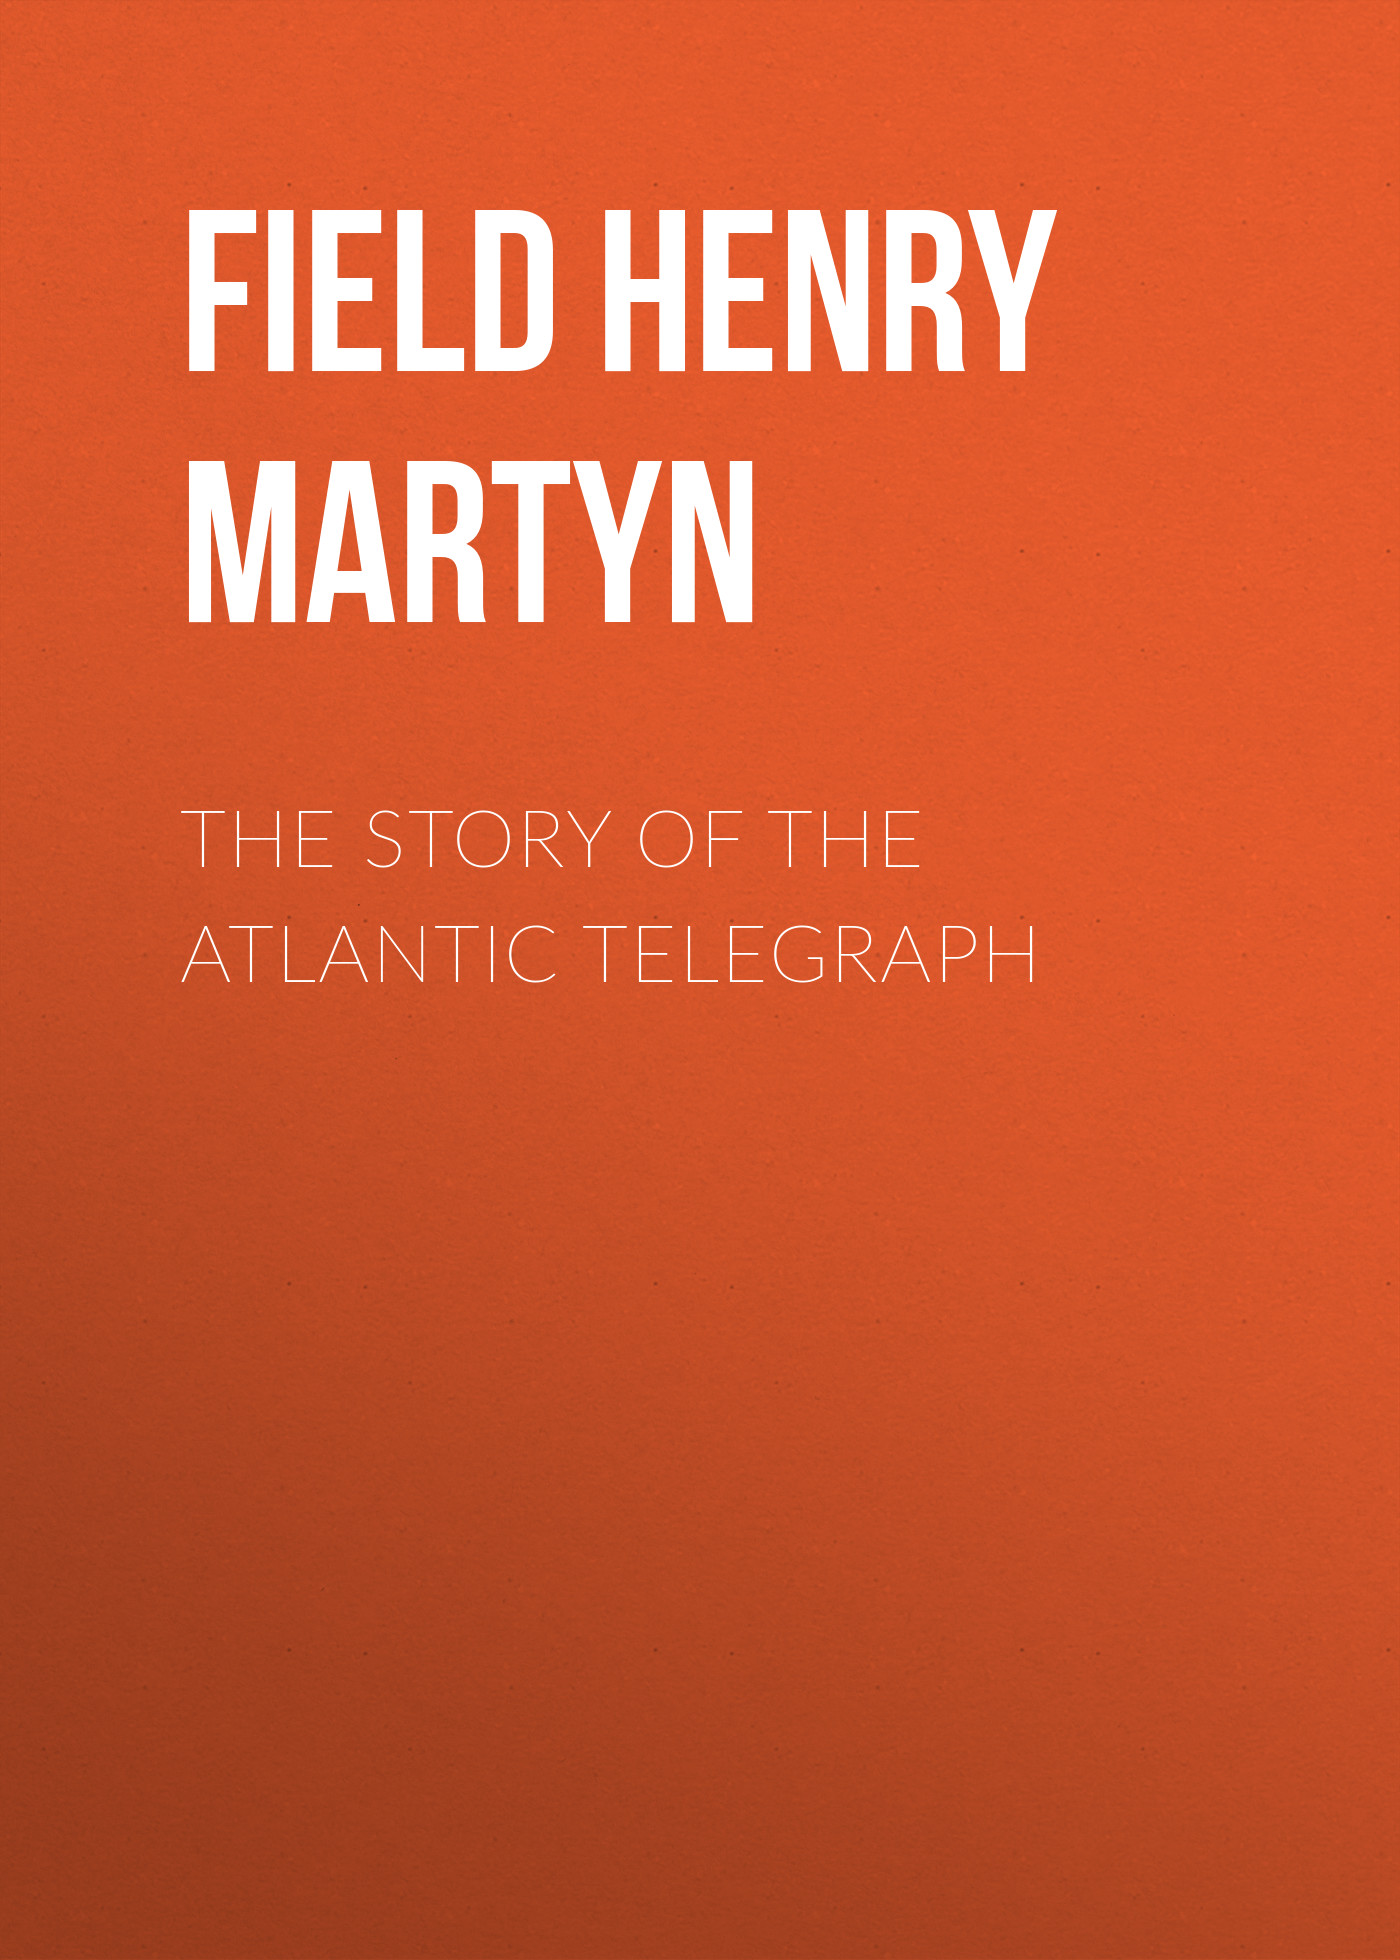 Field Henry Martyn The Story of the Atlantic Telegraph